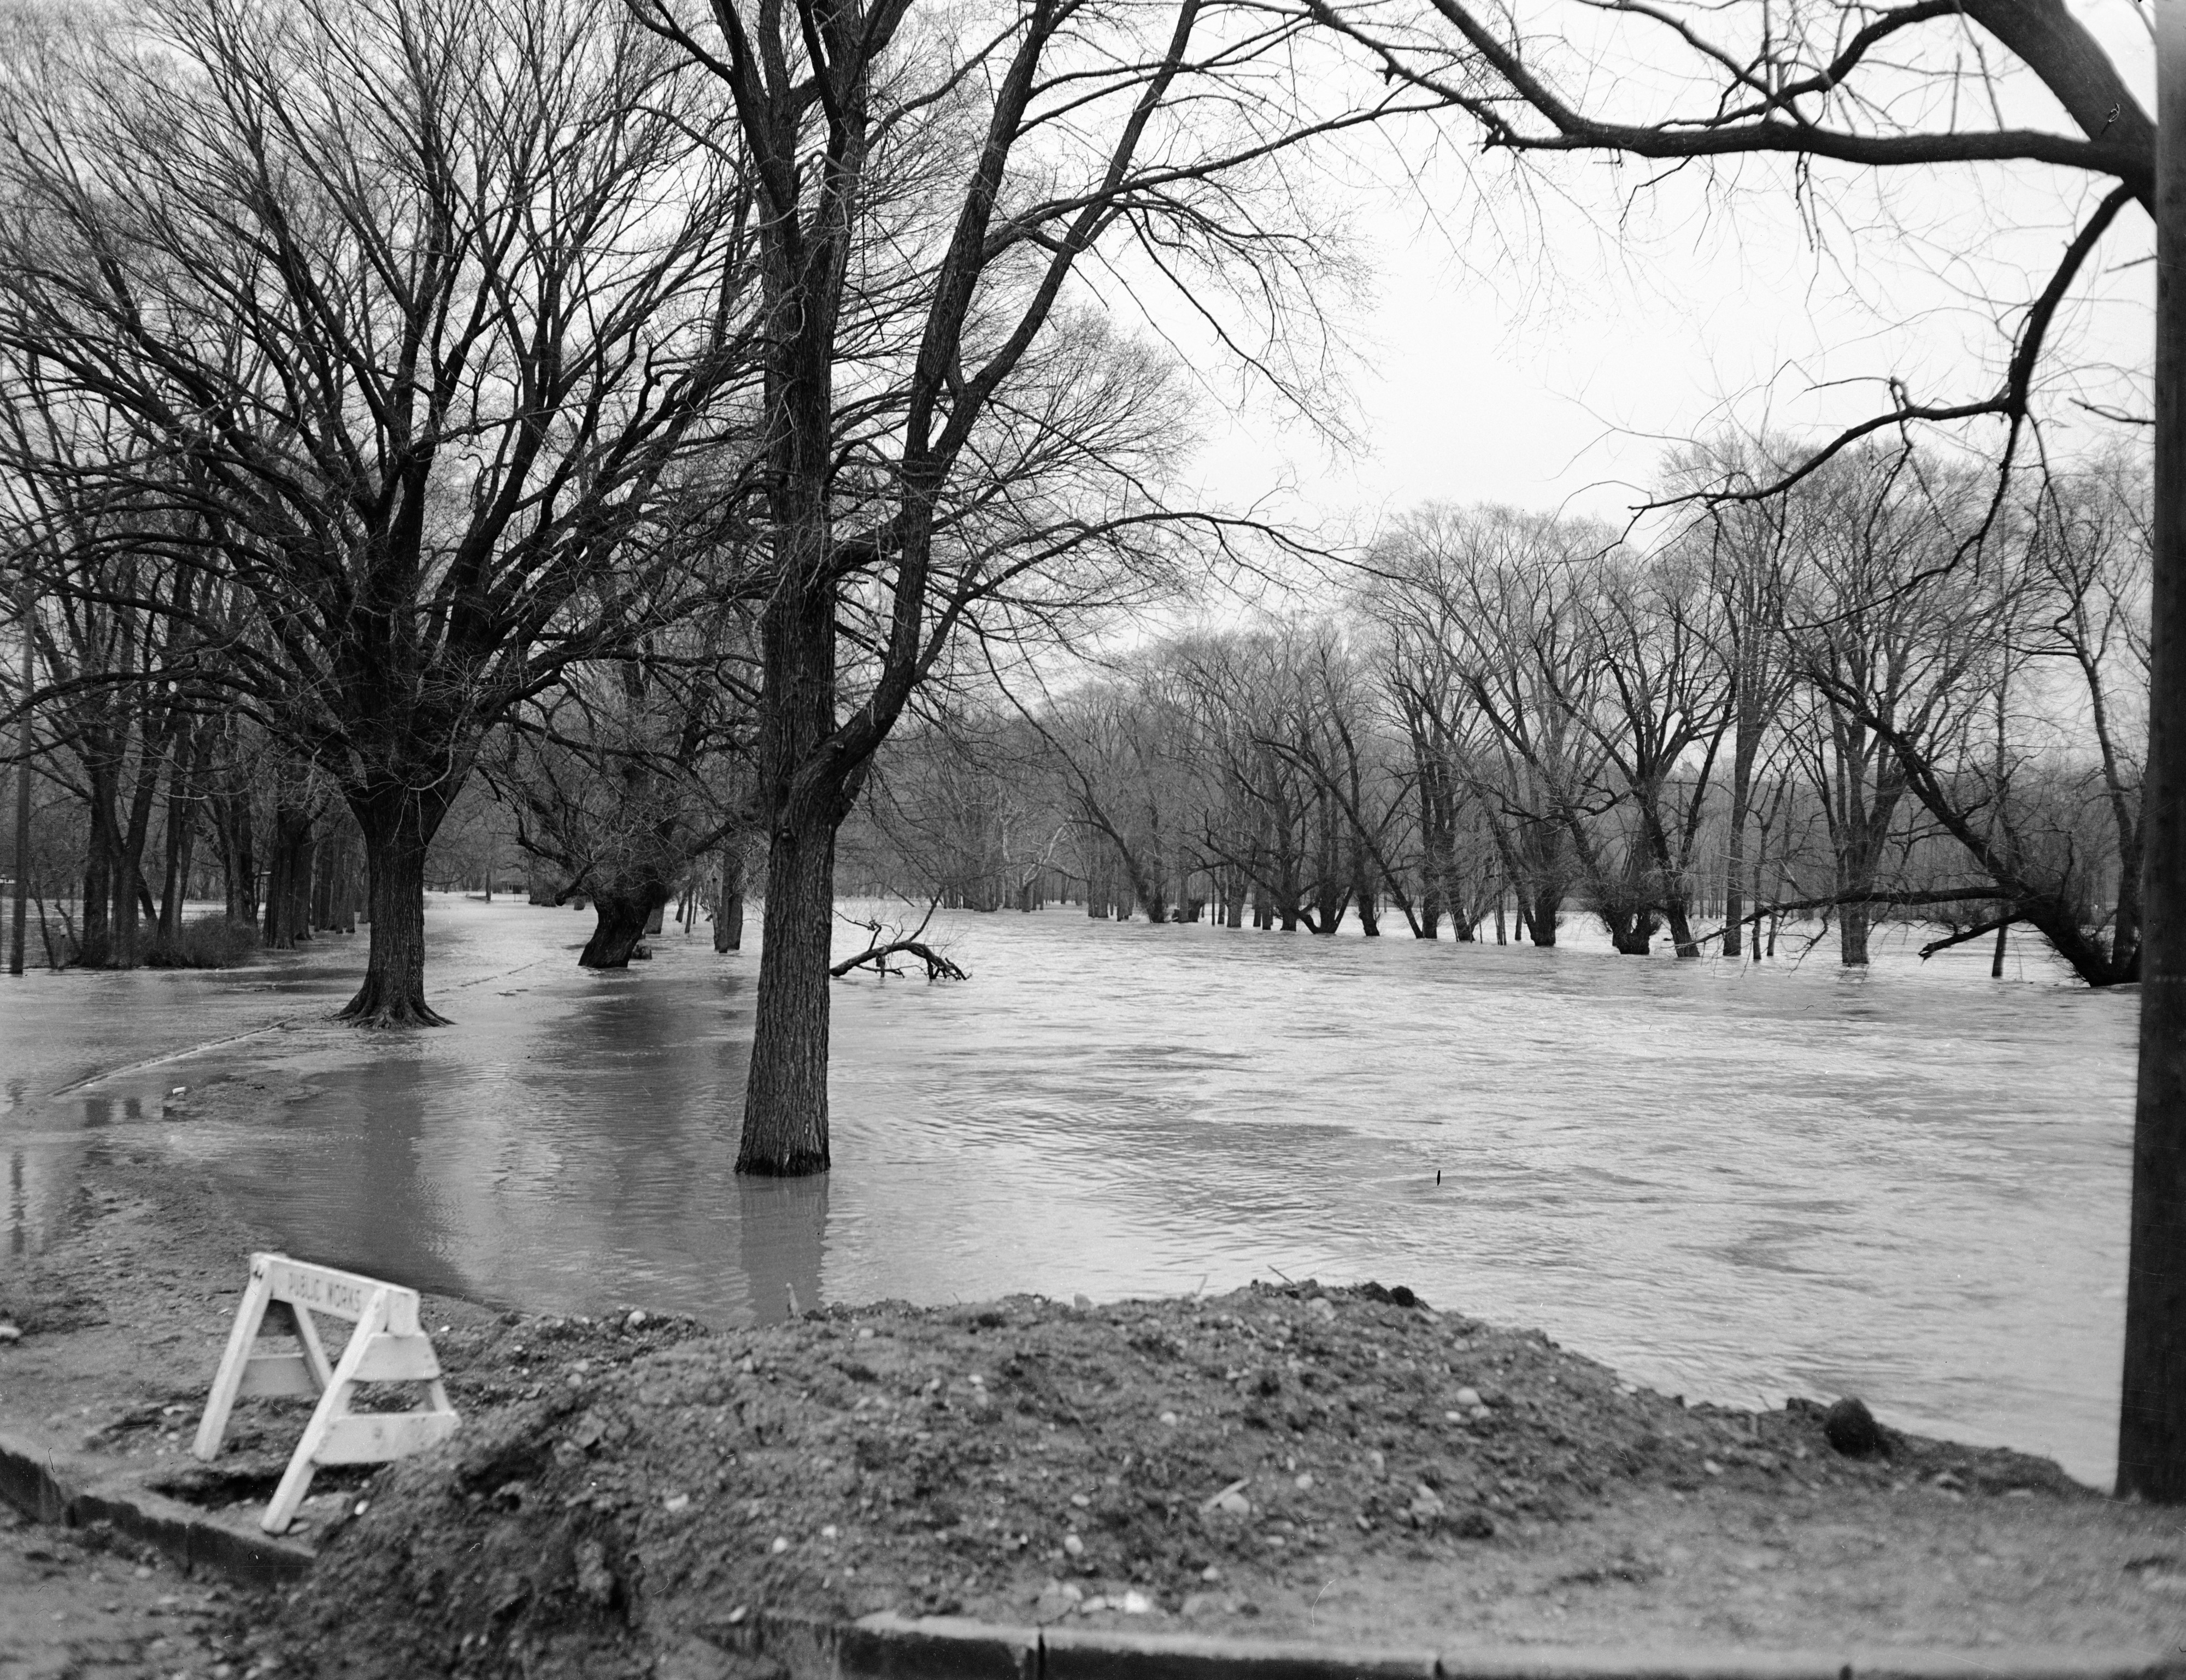 Island Drive Flooded By Overflowing Huron River, April 1950 image